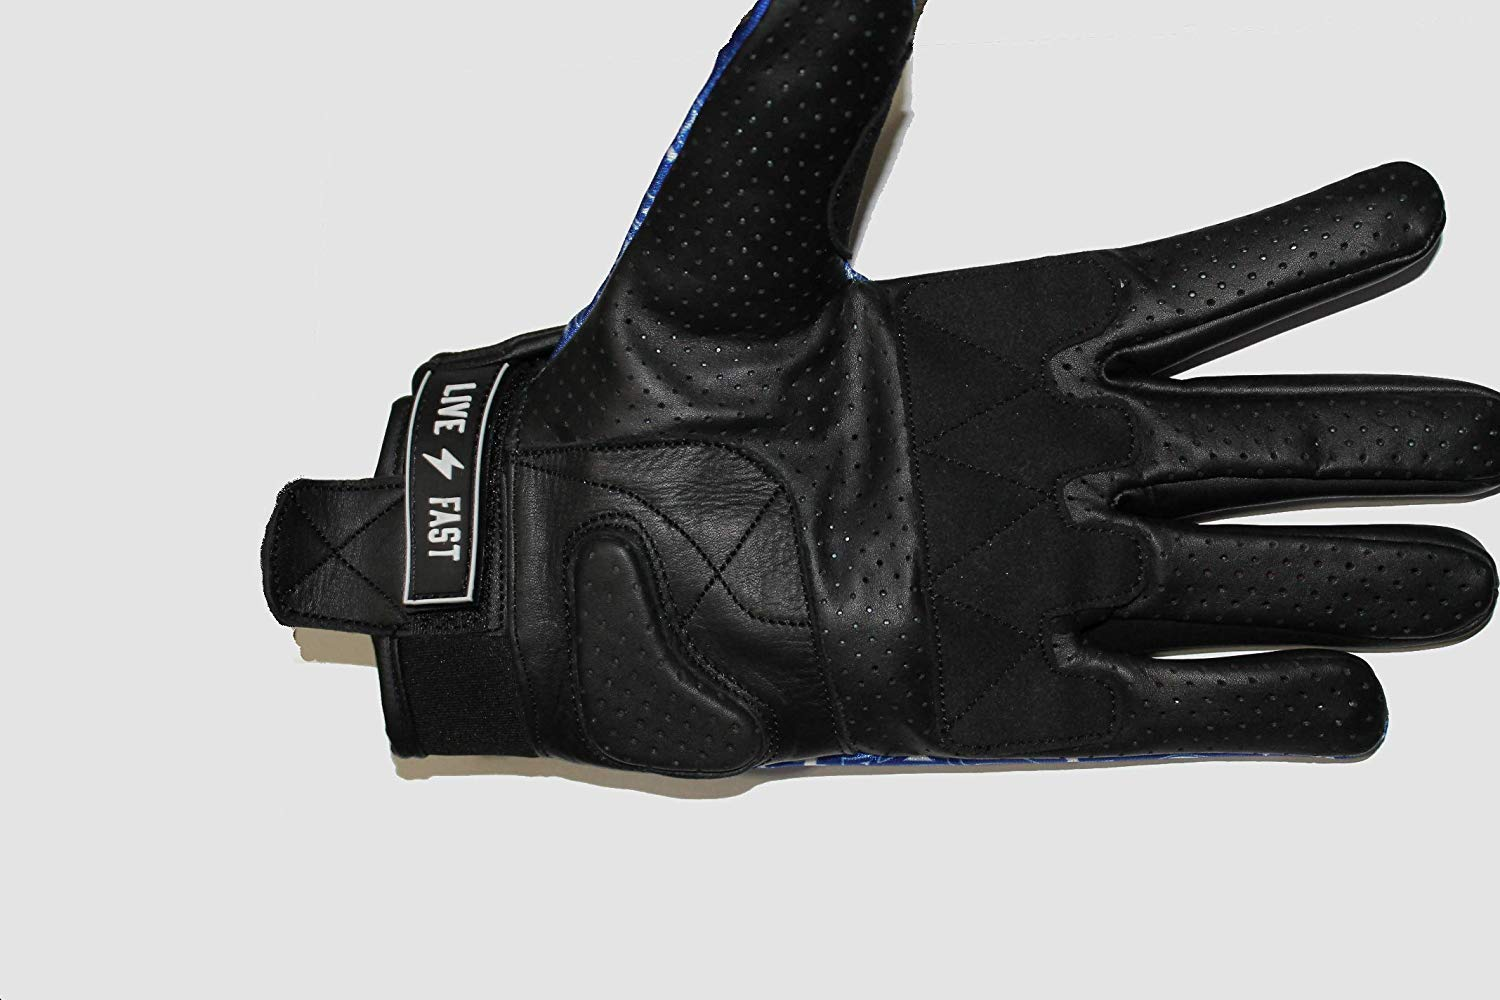 FAST MASK MOTORCYCLE GLOVE FULL LEATHER REINFORCED PALM AND KNUCKLE PROTECTION BANDANA PRINT L, BLACK